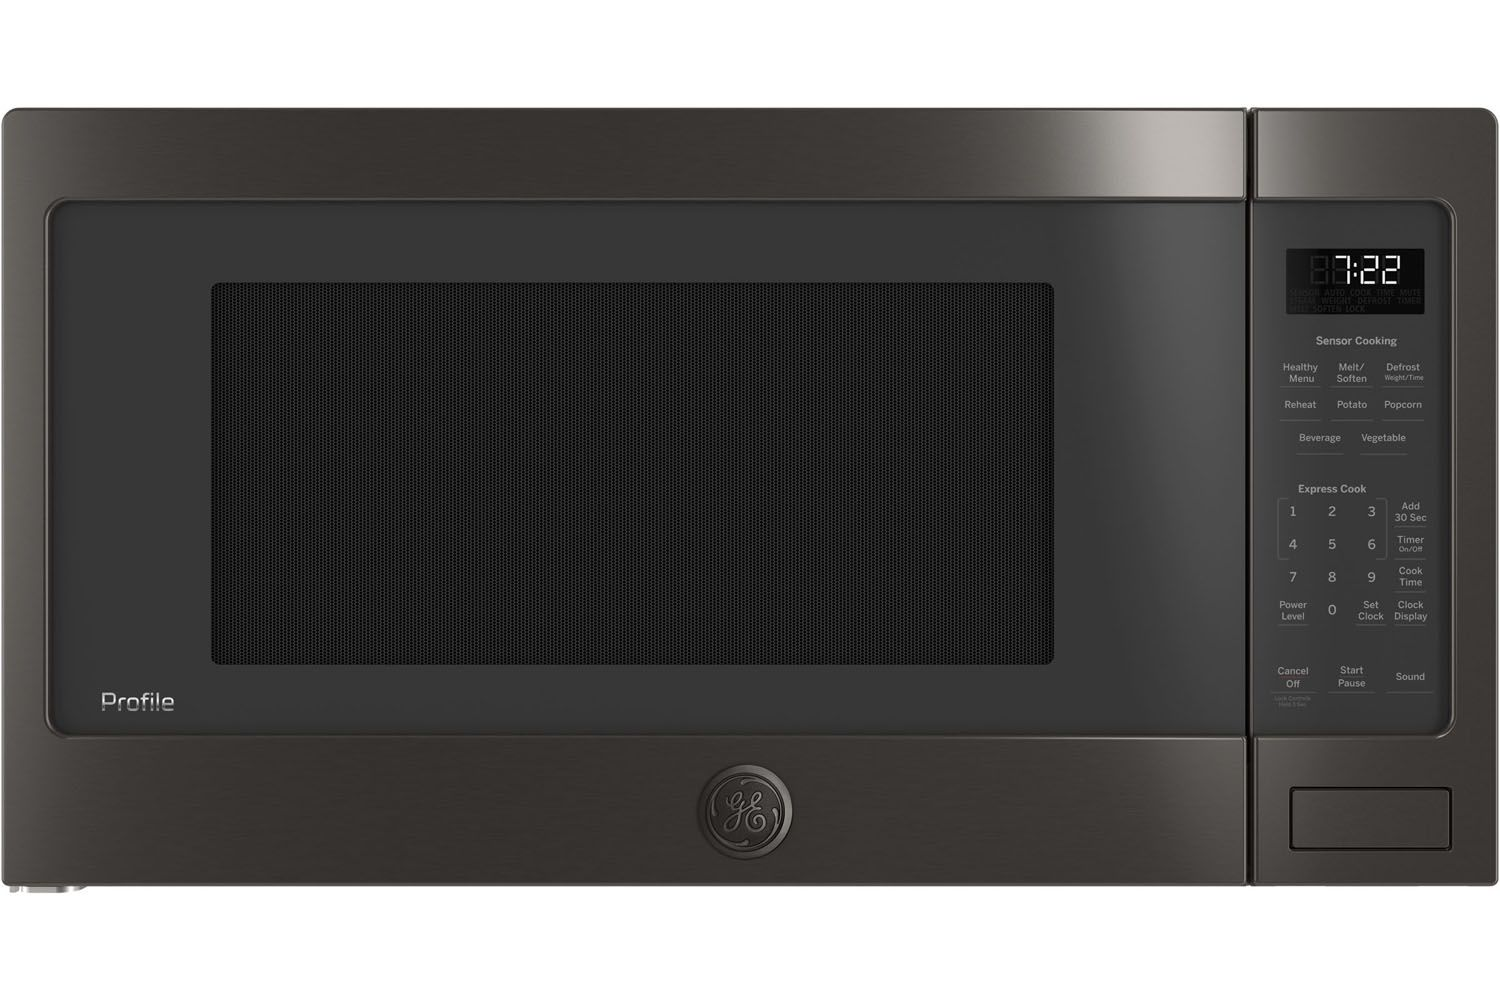 Ge Profile Black Stainless Steel Countertop Microwave Oven Pes7227blts